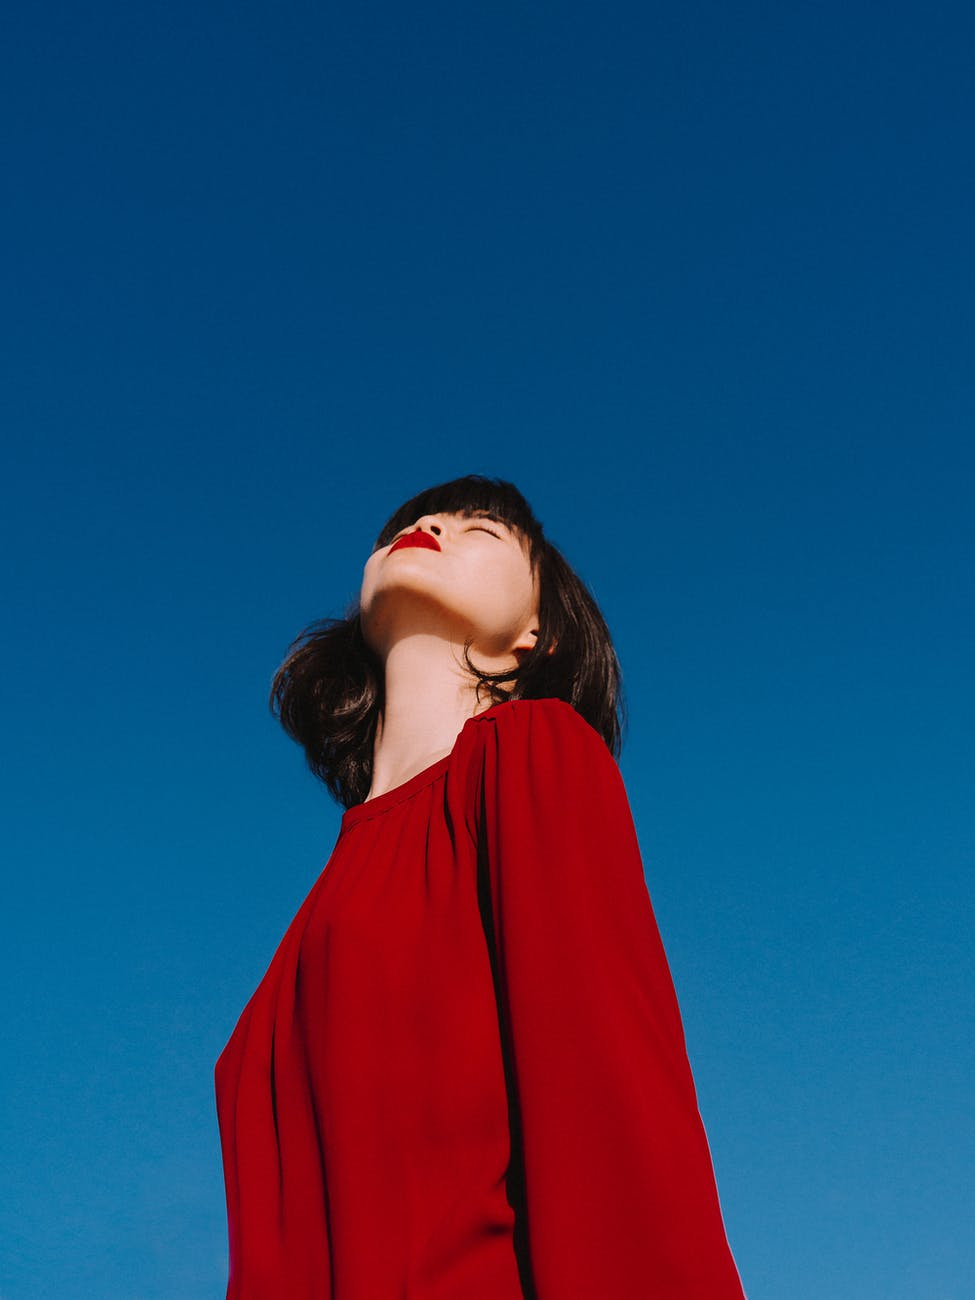 stylish asian woman with bright red lips enjoying sunny weather